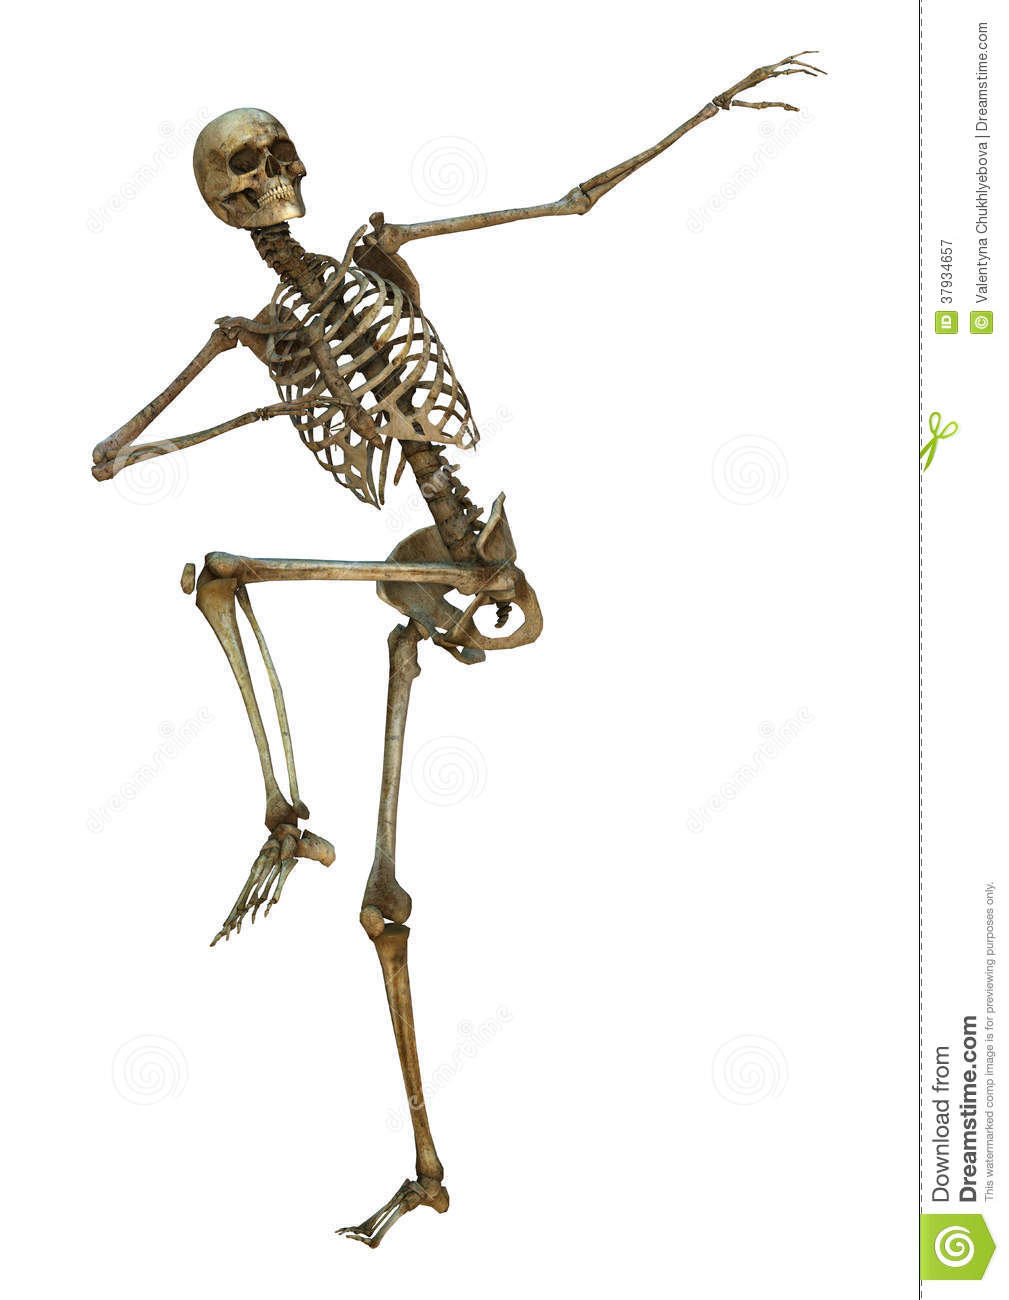 human skeleton royalty free stock photography image people dancing clip art images Black People Dancing Clip Art